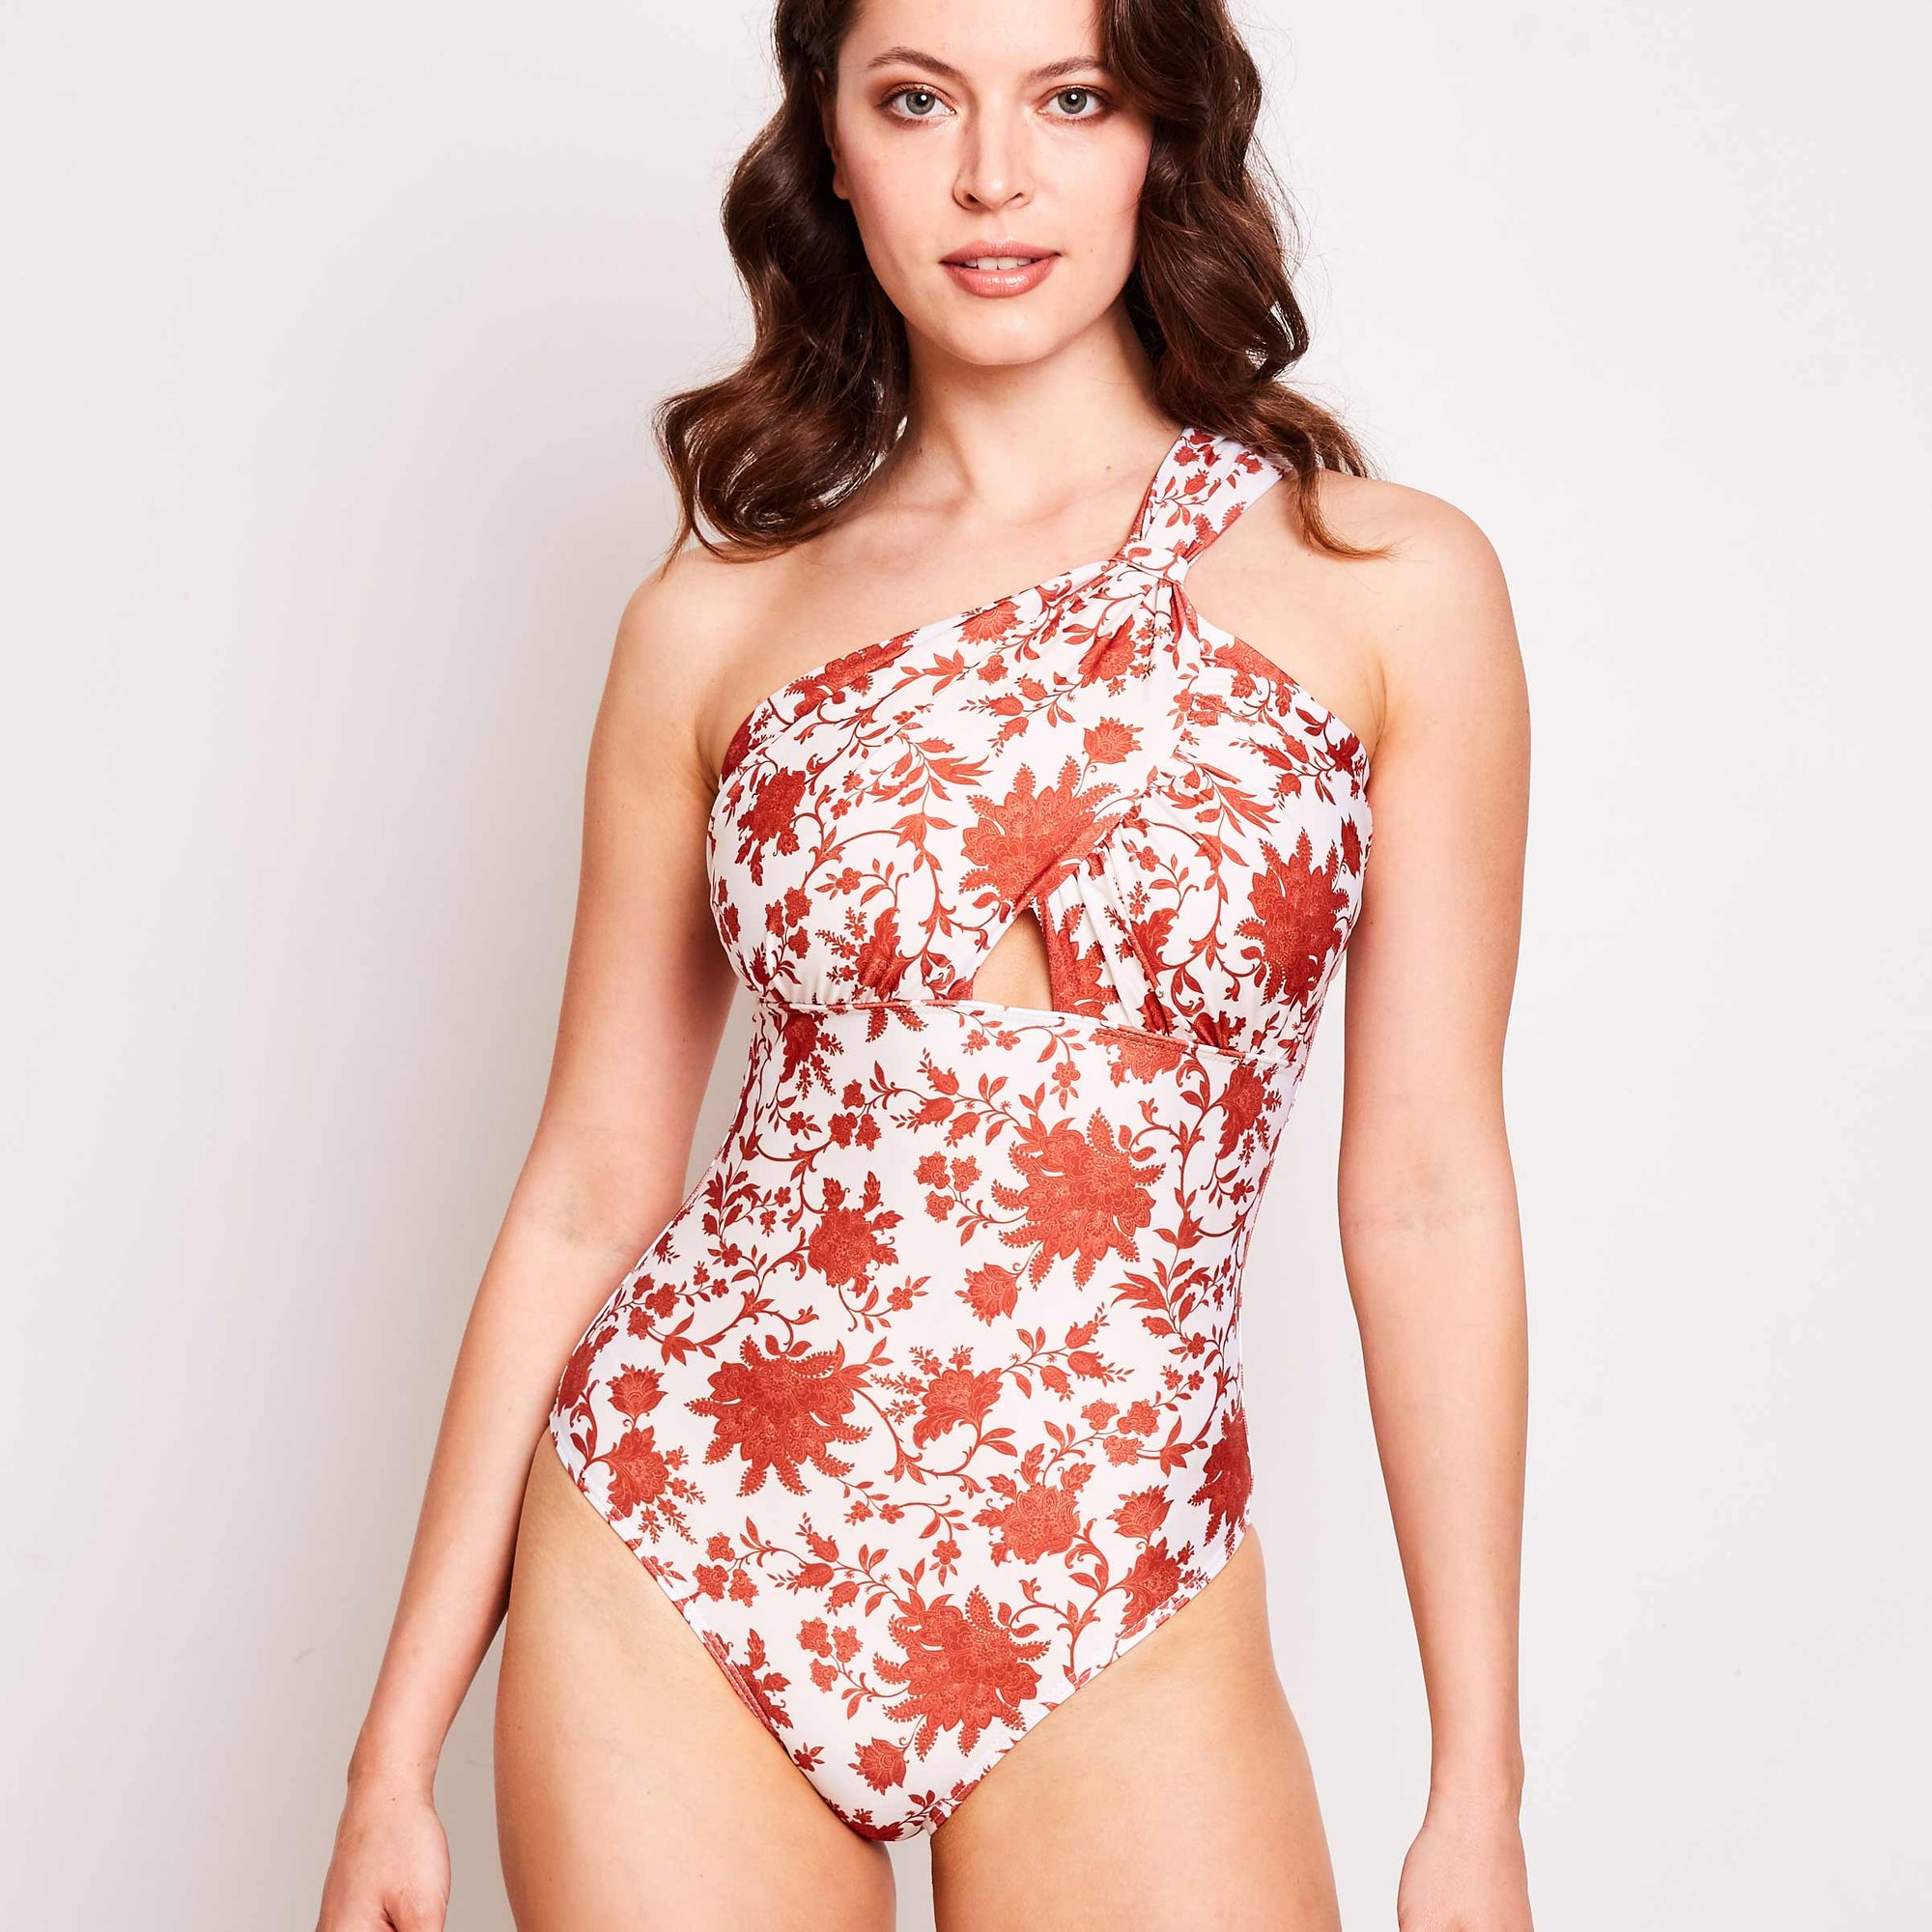 Angelica-one-piece-paisley-1-contessa-volpi-summer-swimwear-collection